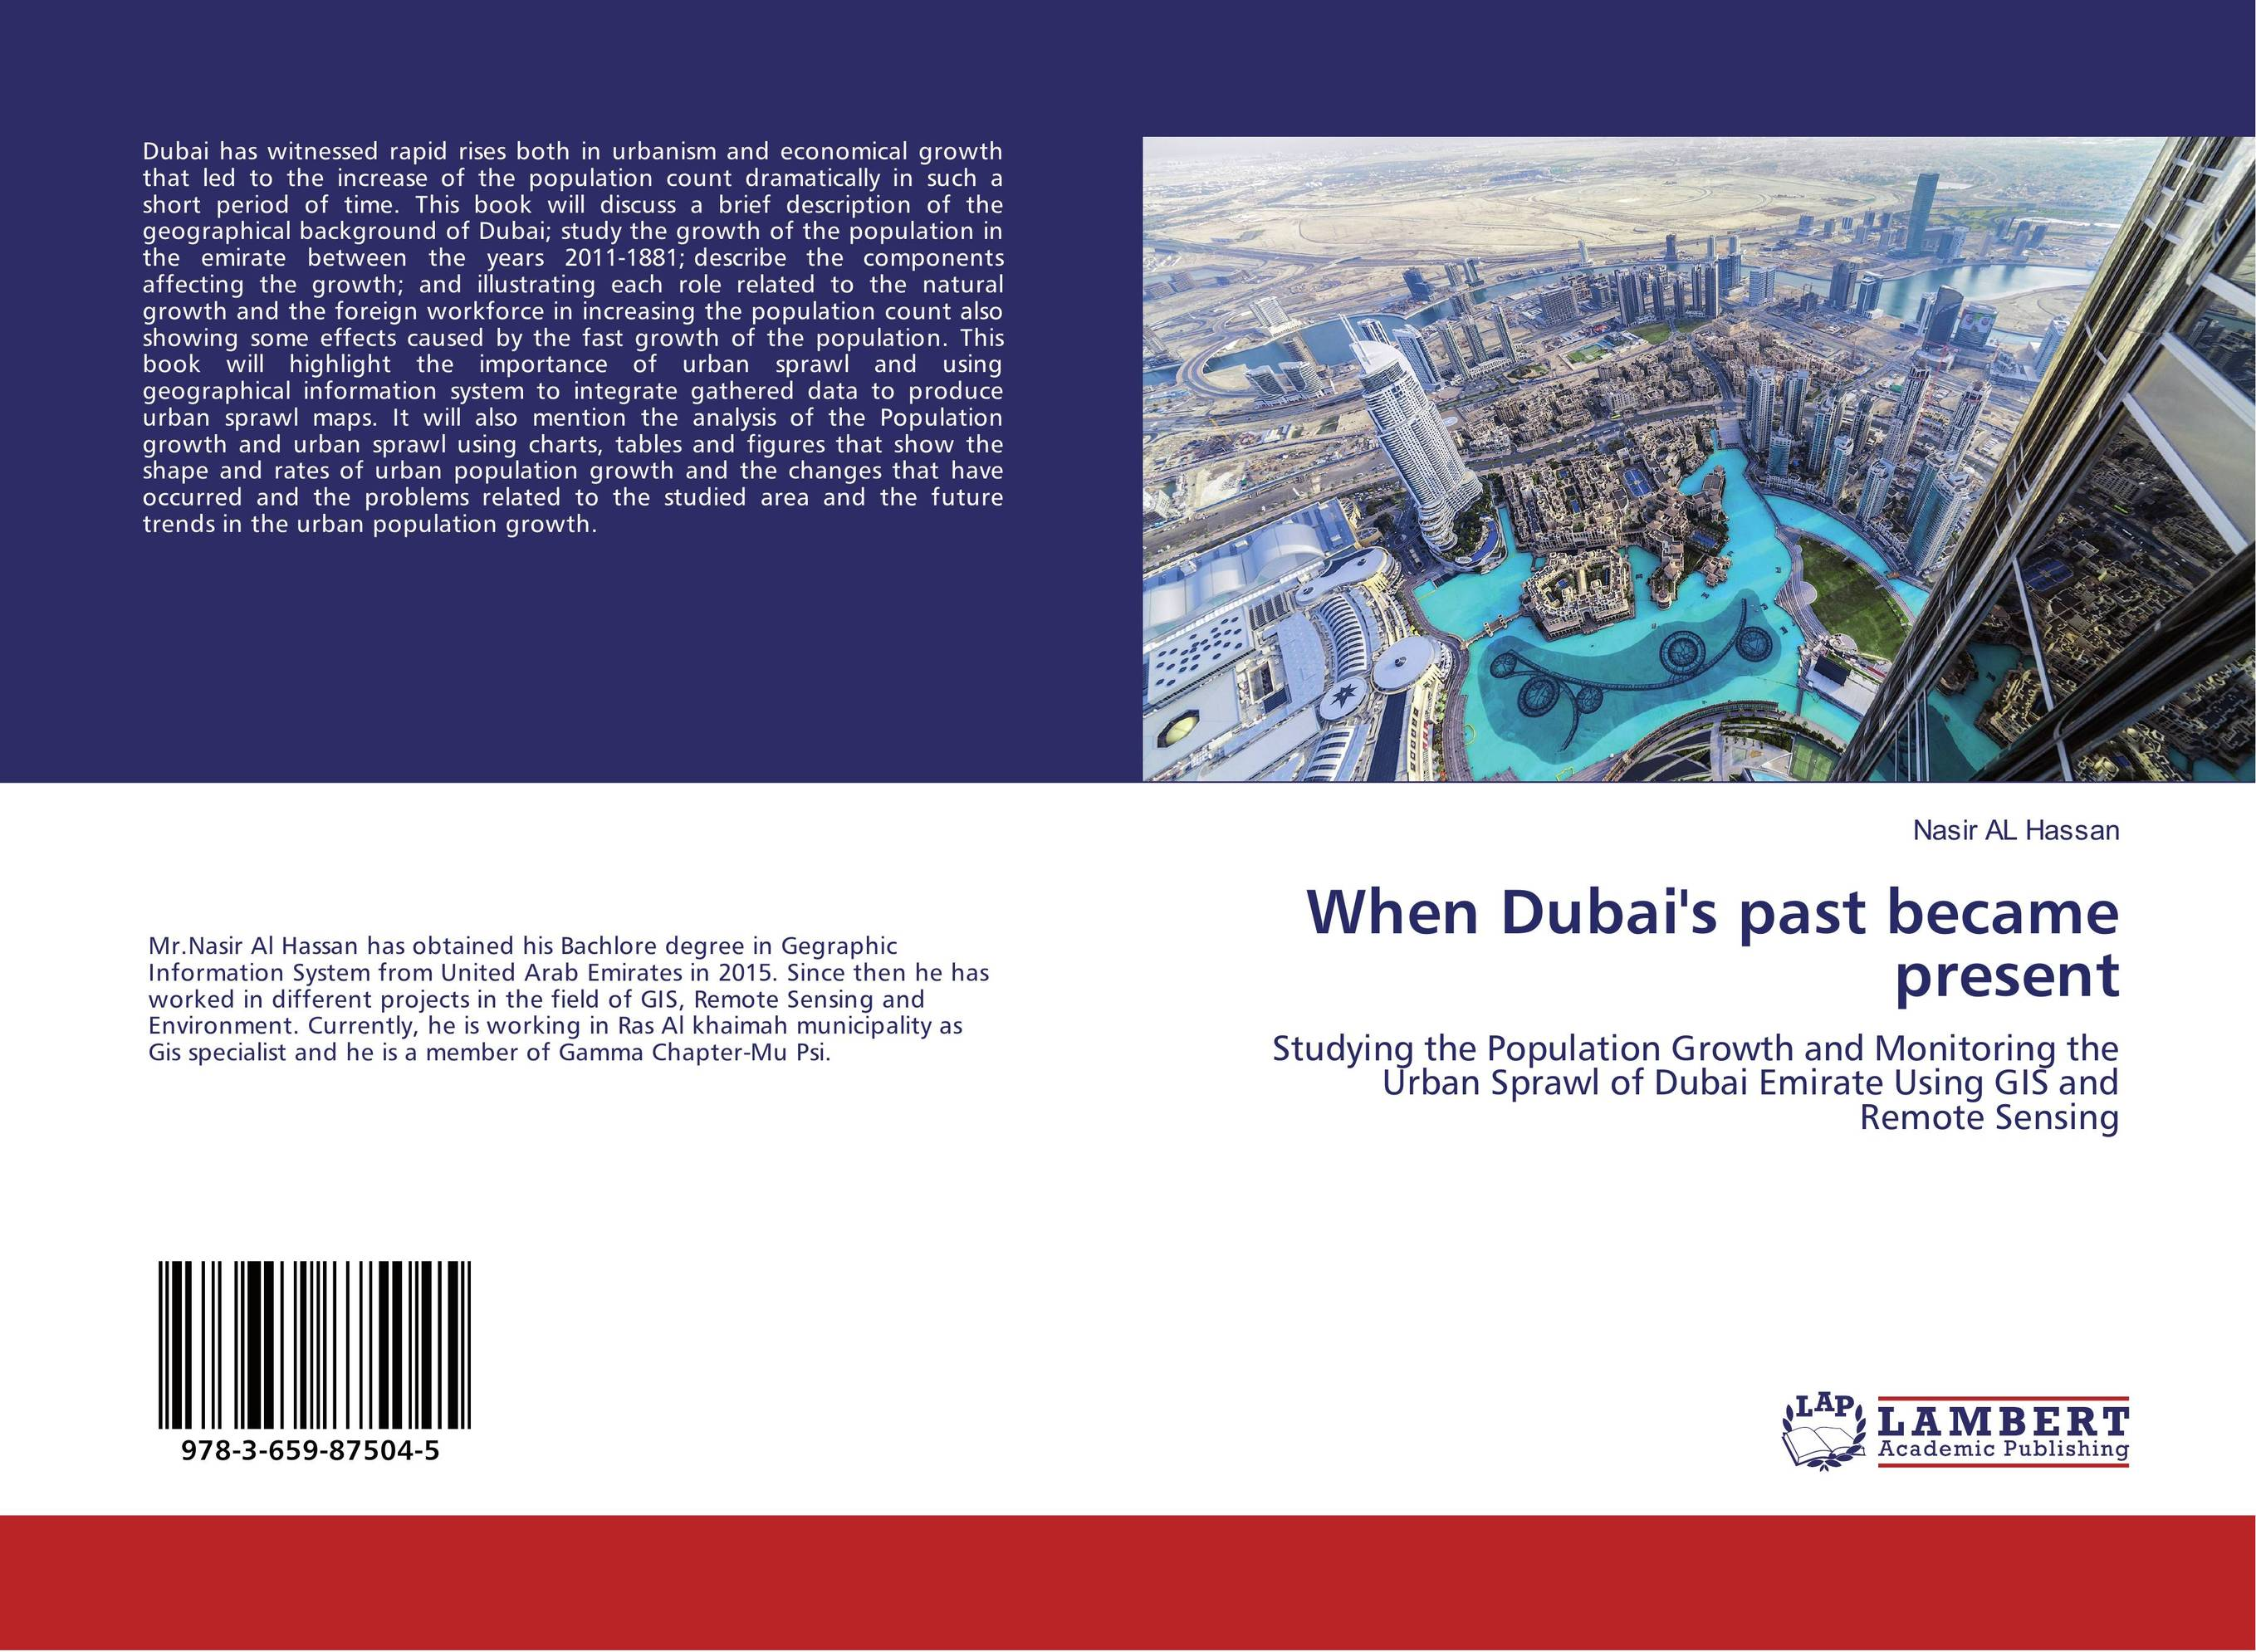 When Dubai's past became present psychiatric and physical morbidity in an urban geriatric population